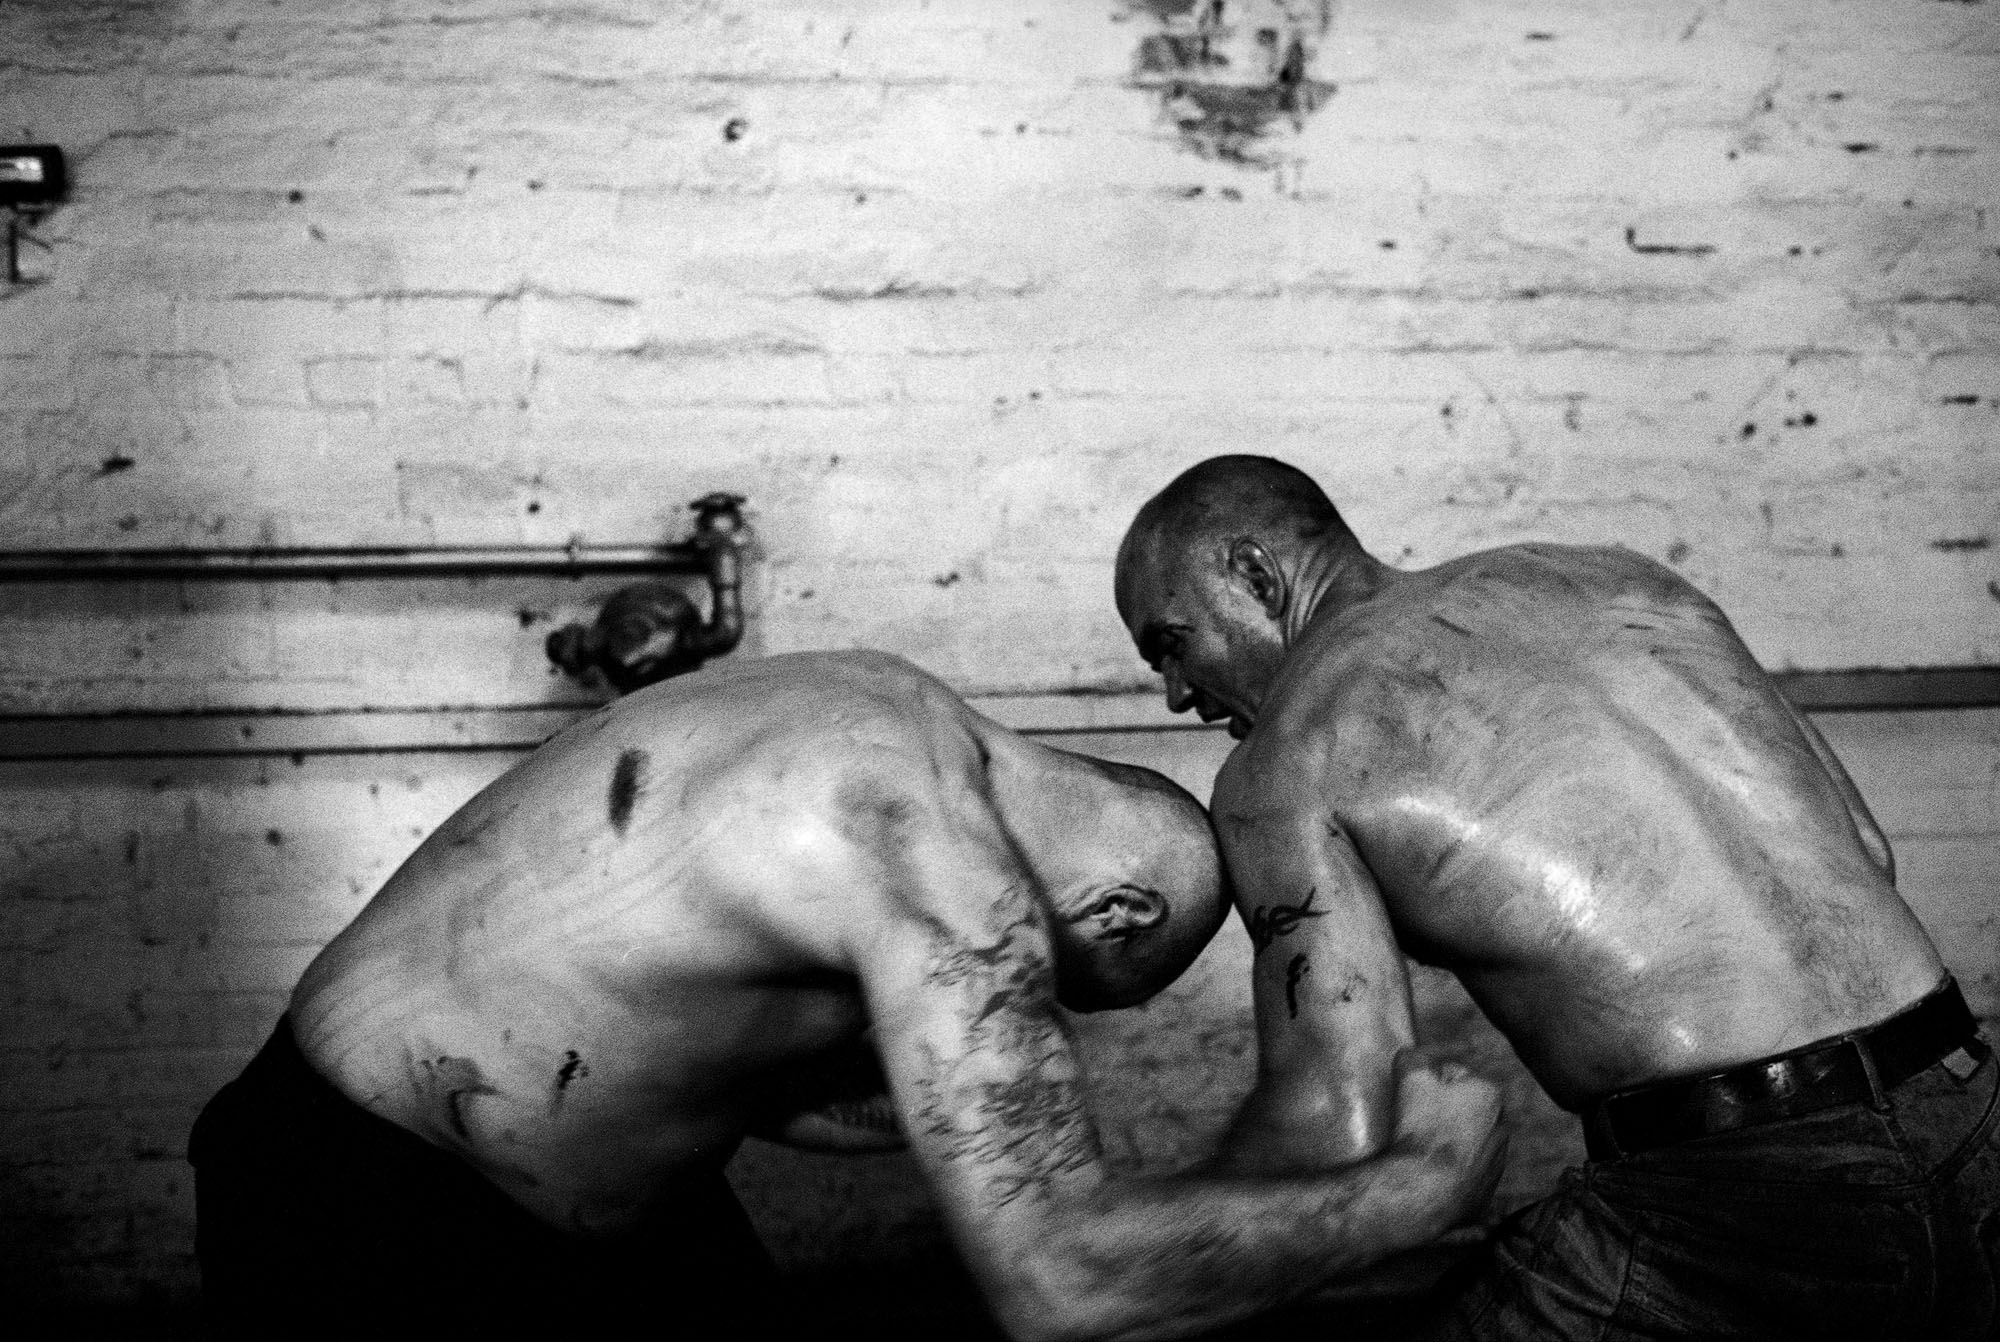 Knuckle bare fist fighting